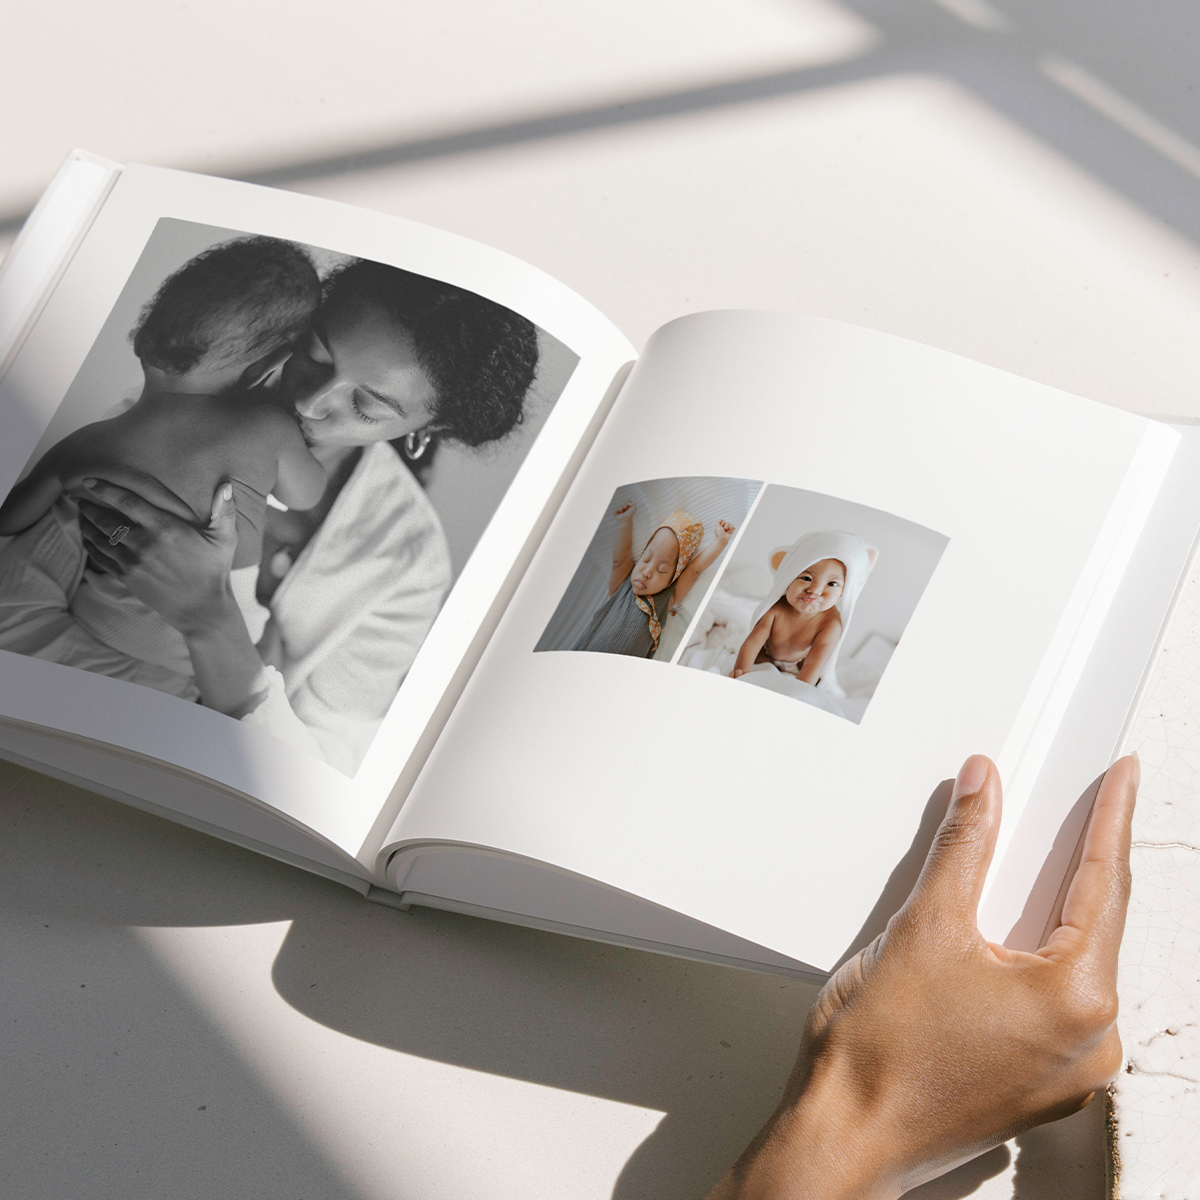 Interior pages of Artifact Uprising Photo-Wrapped Hardcover showing baby photos arranged in a different layout on either page